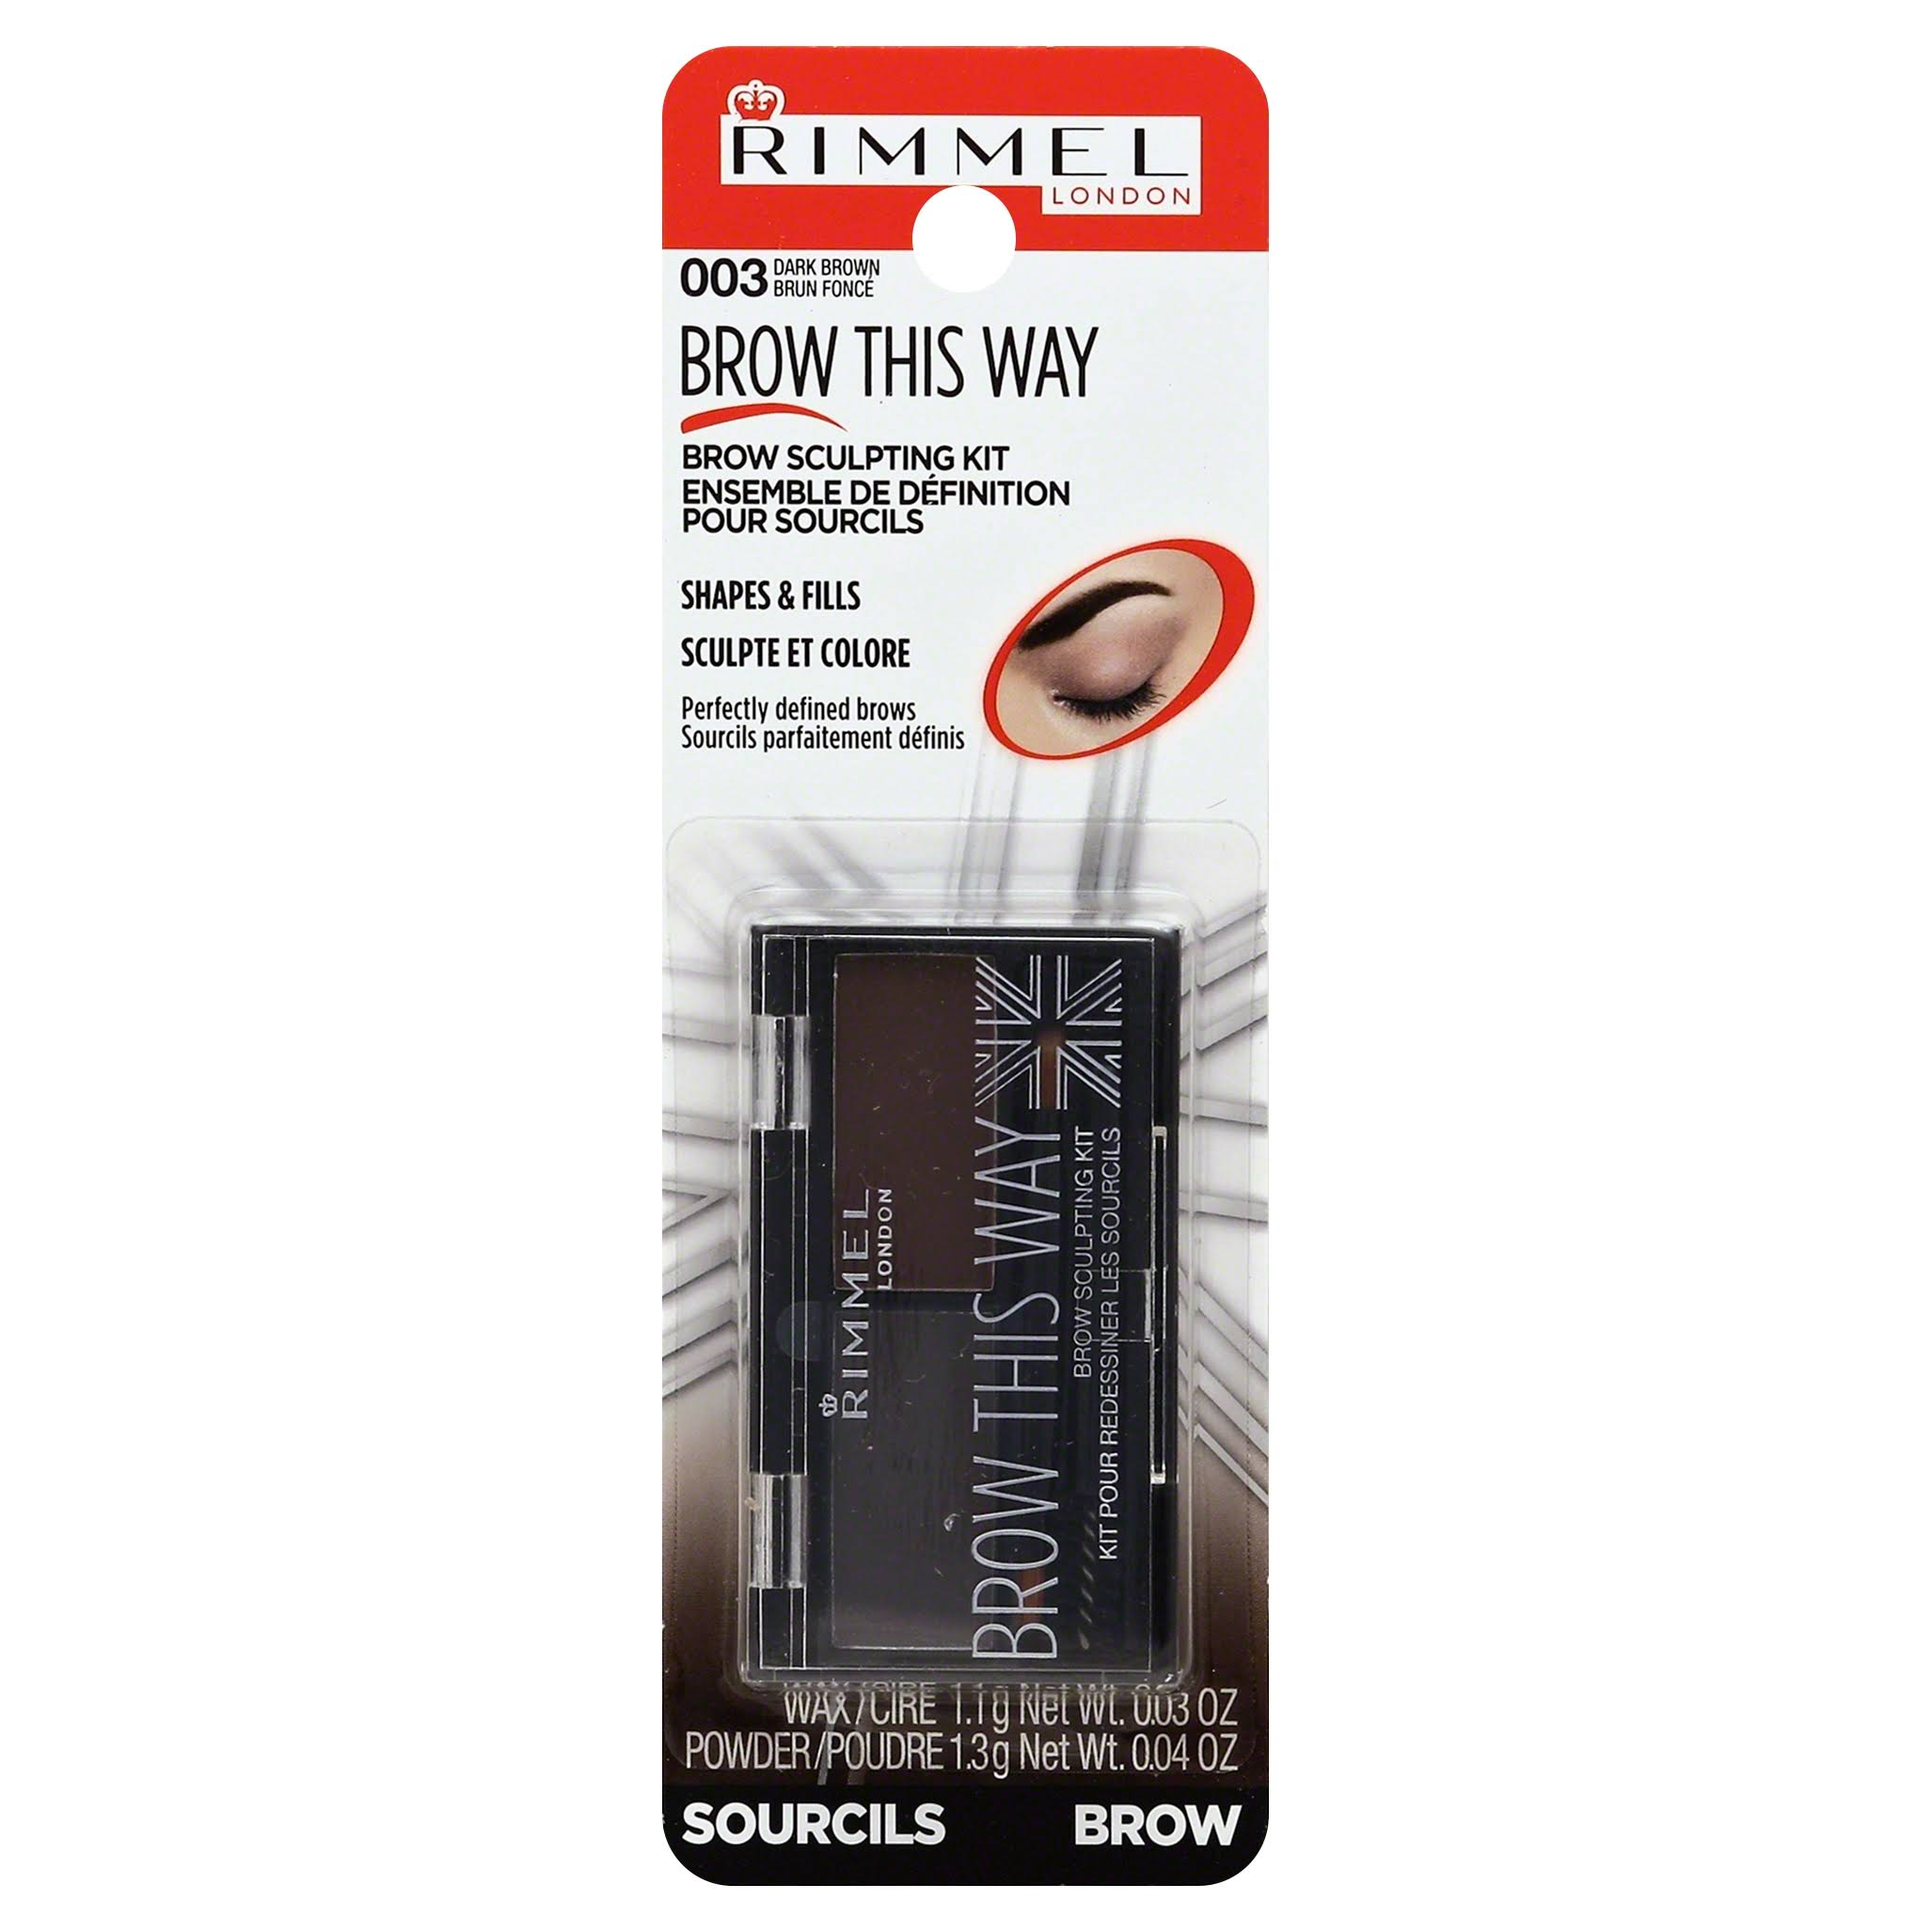 Rimmel London Brow This Way Brow Sculpting Kit - 003 Dark Brown